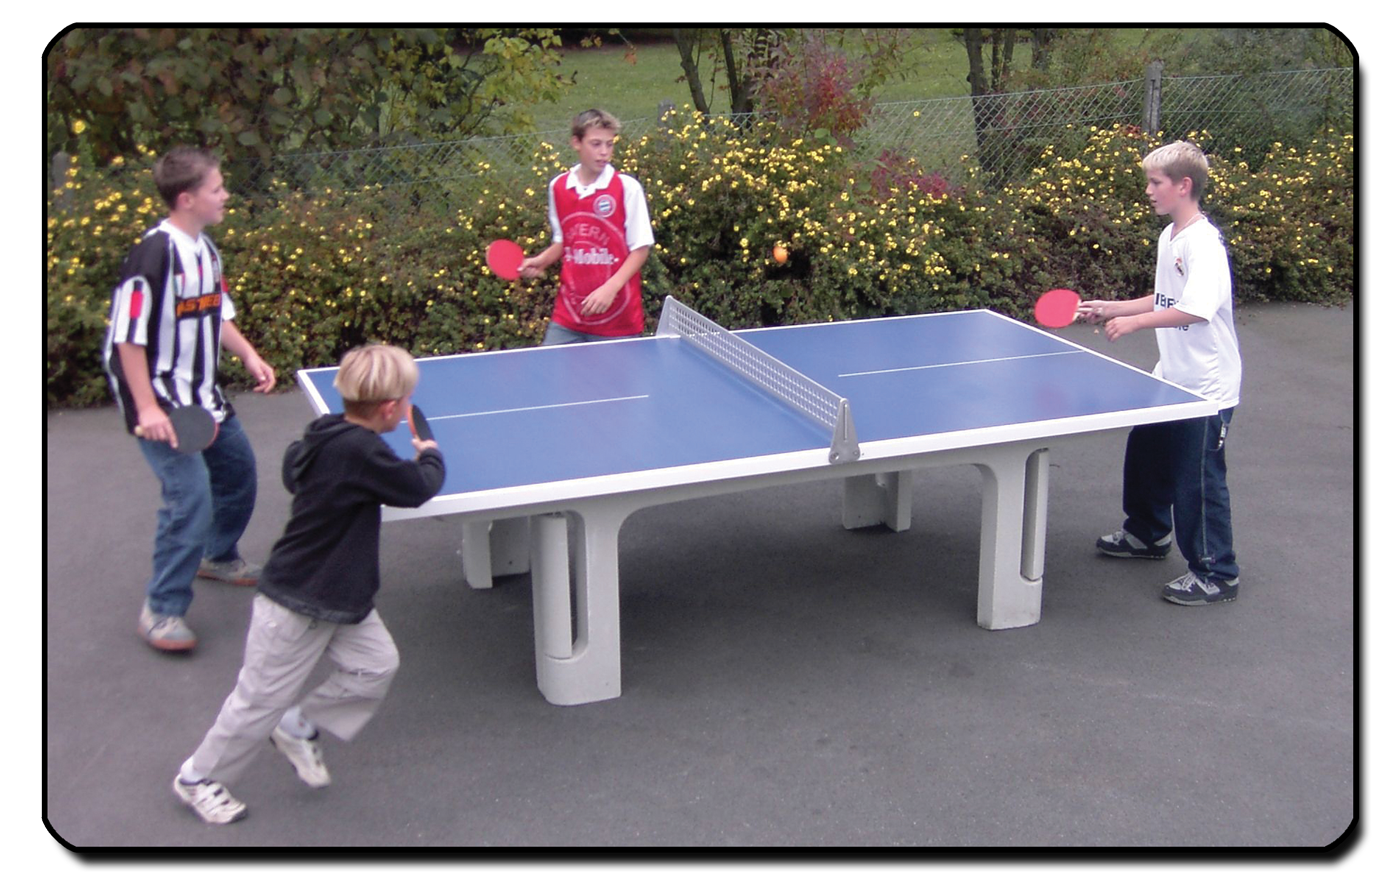 Butterfly Park Concrete table tennis table in use